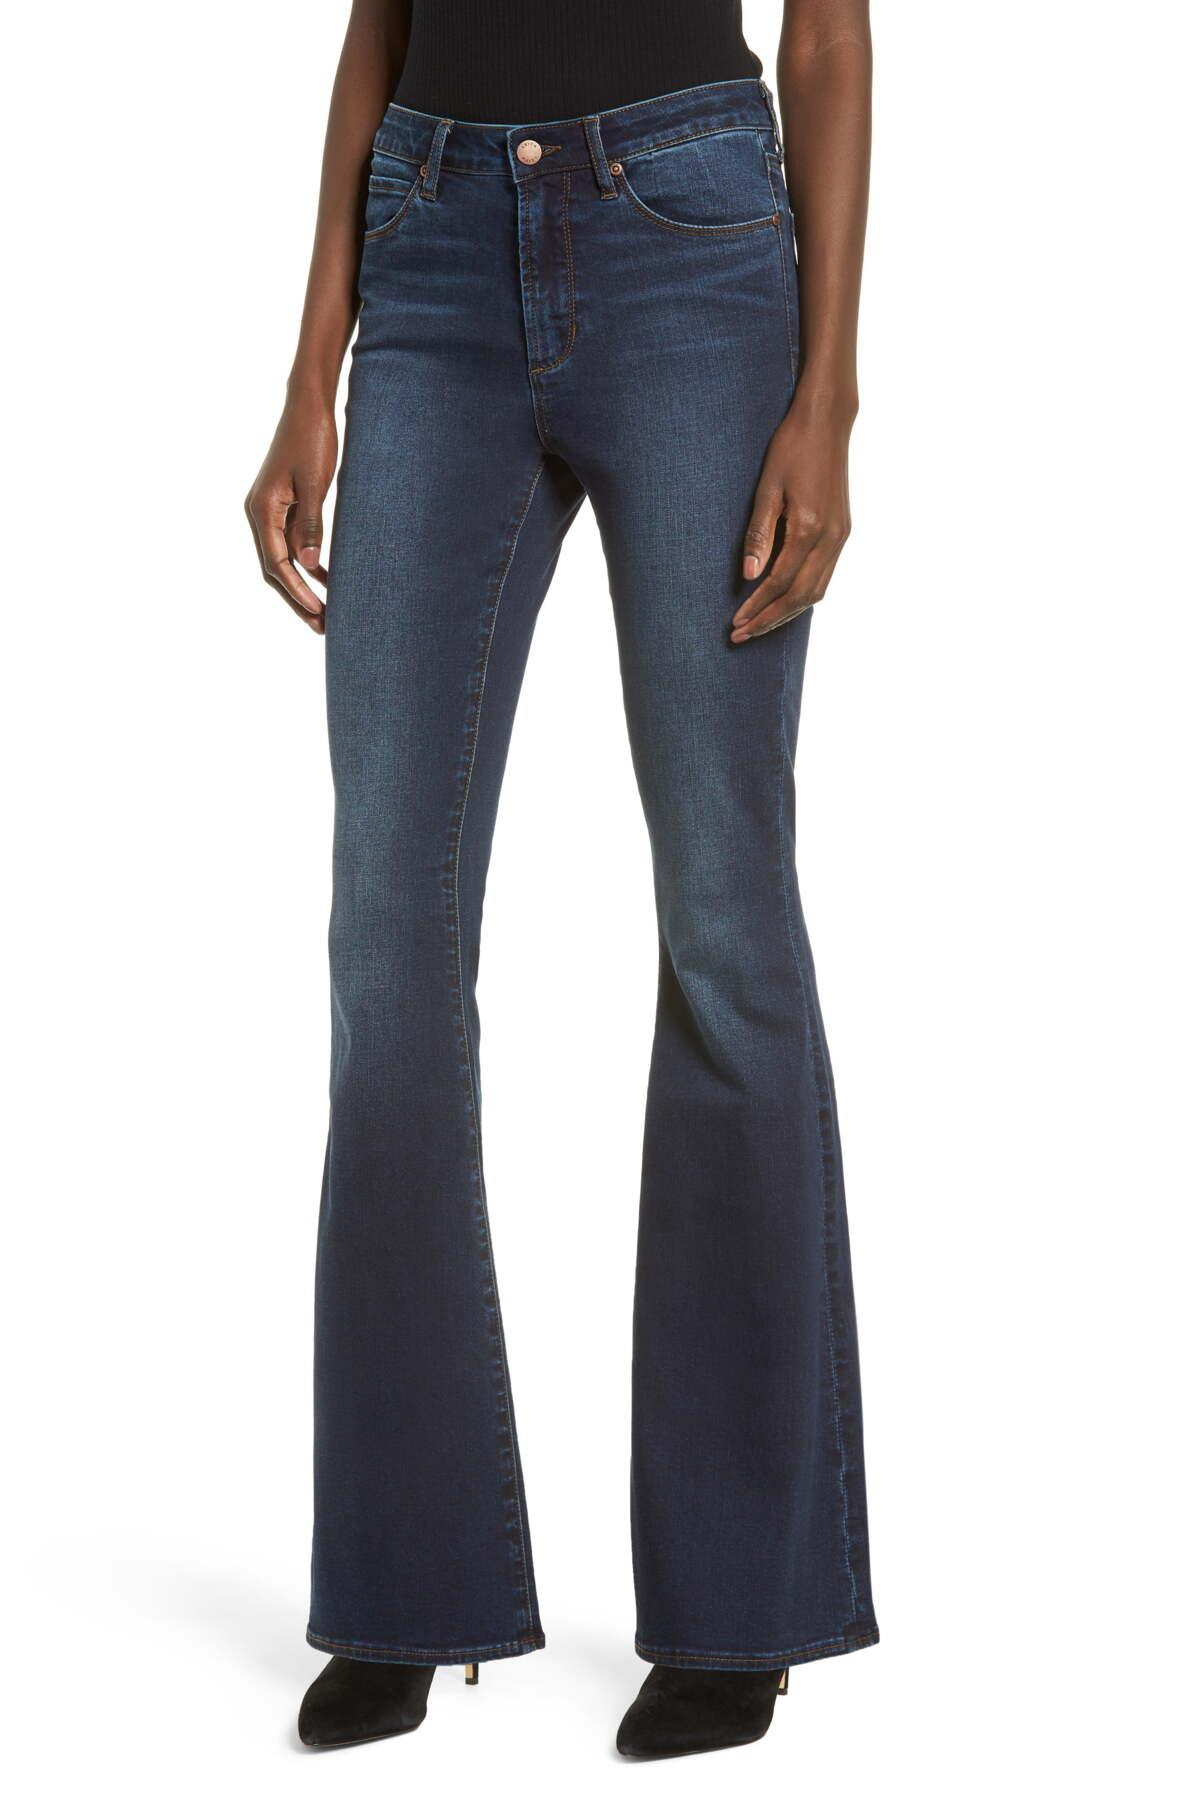 862aa0506 Leith High Waist Flare Jeans in Blue - Lyst